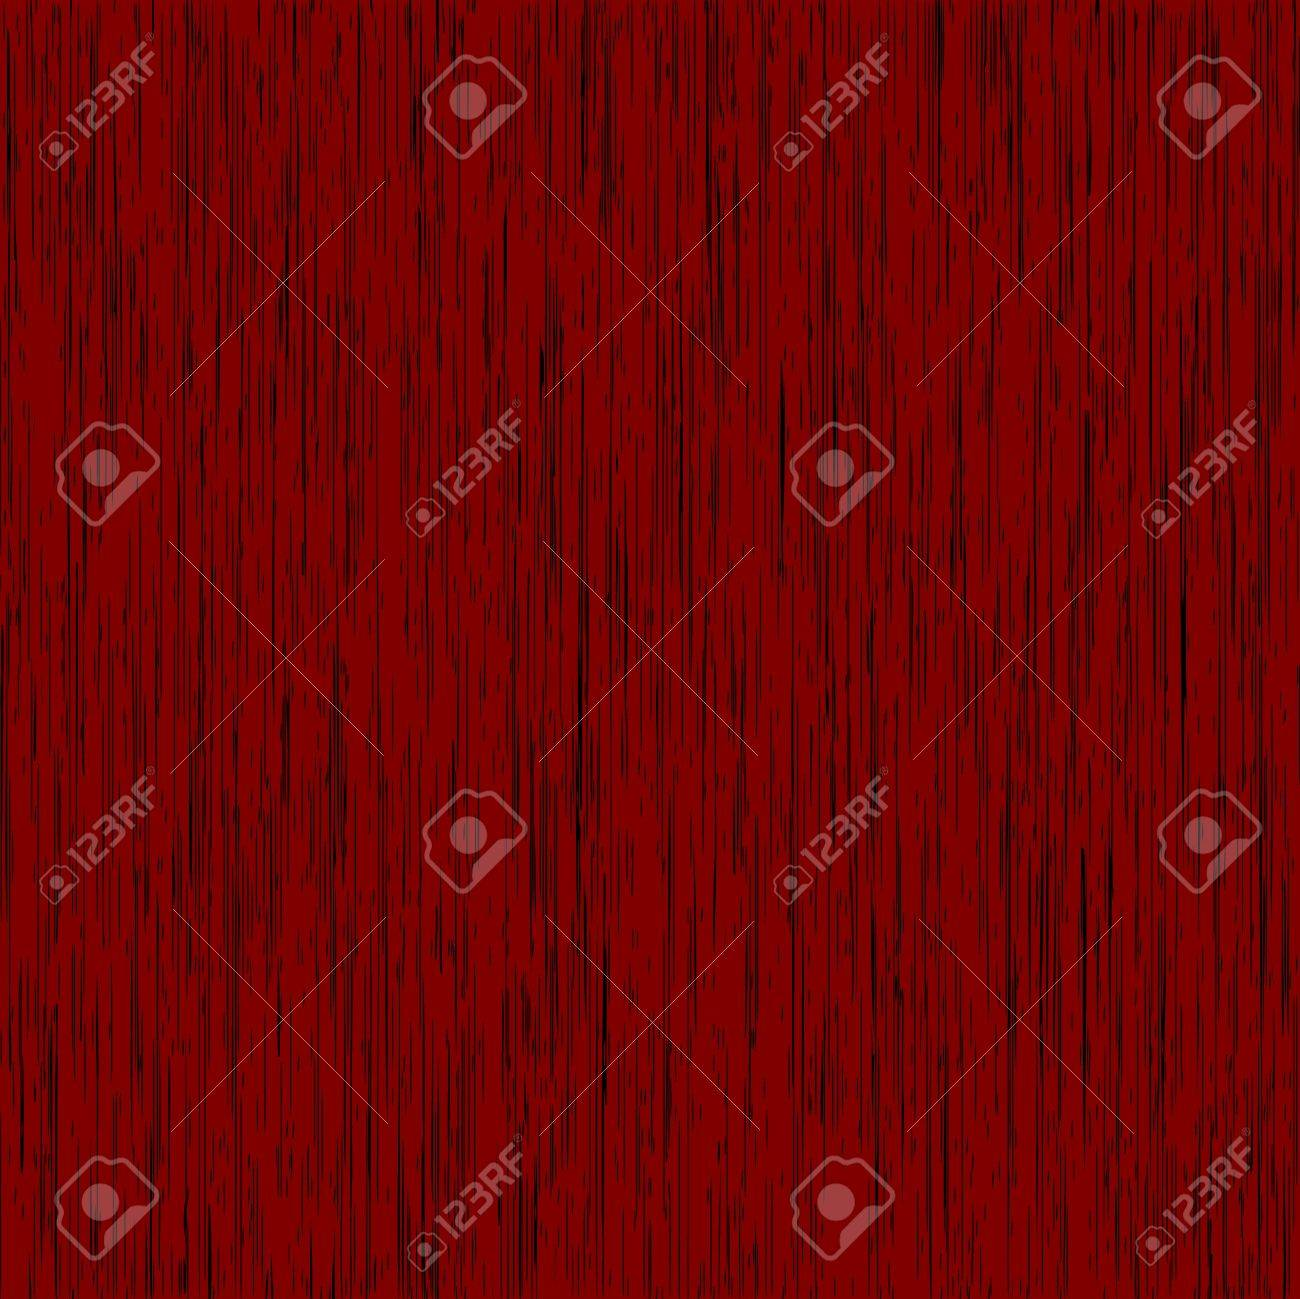 Red wood background pattern texture Stock Vector - 11471591